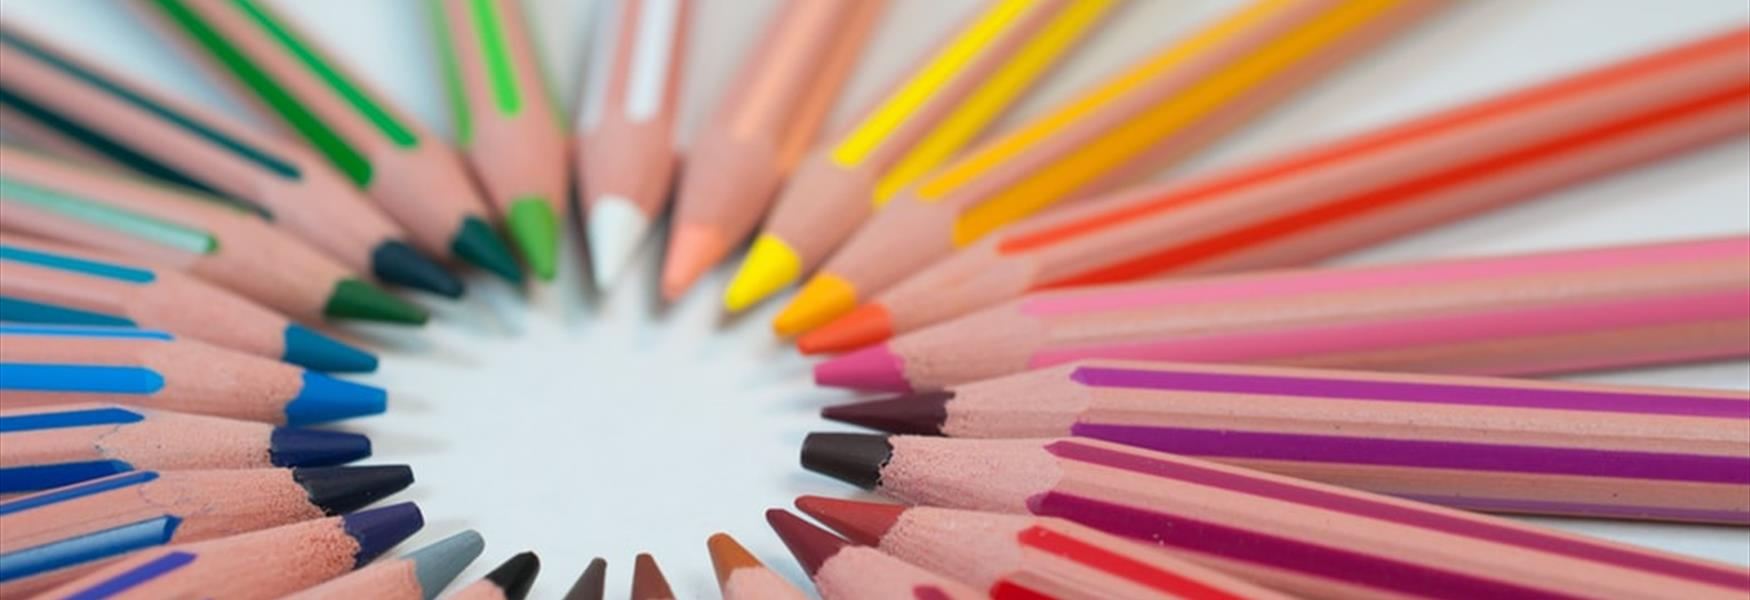 Coloured Pencils by Agence Olloweb on Unsplash - Visit Nottinghamshire